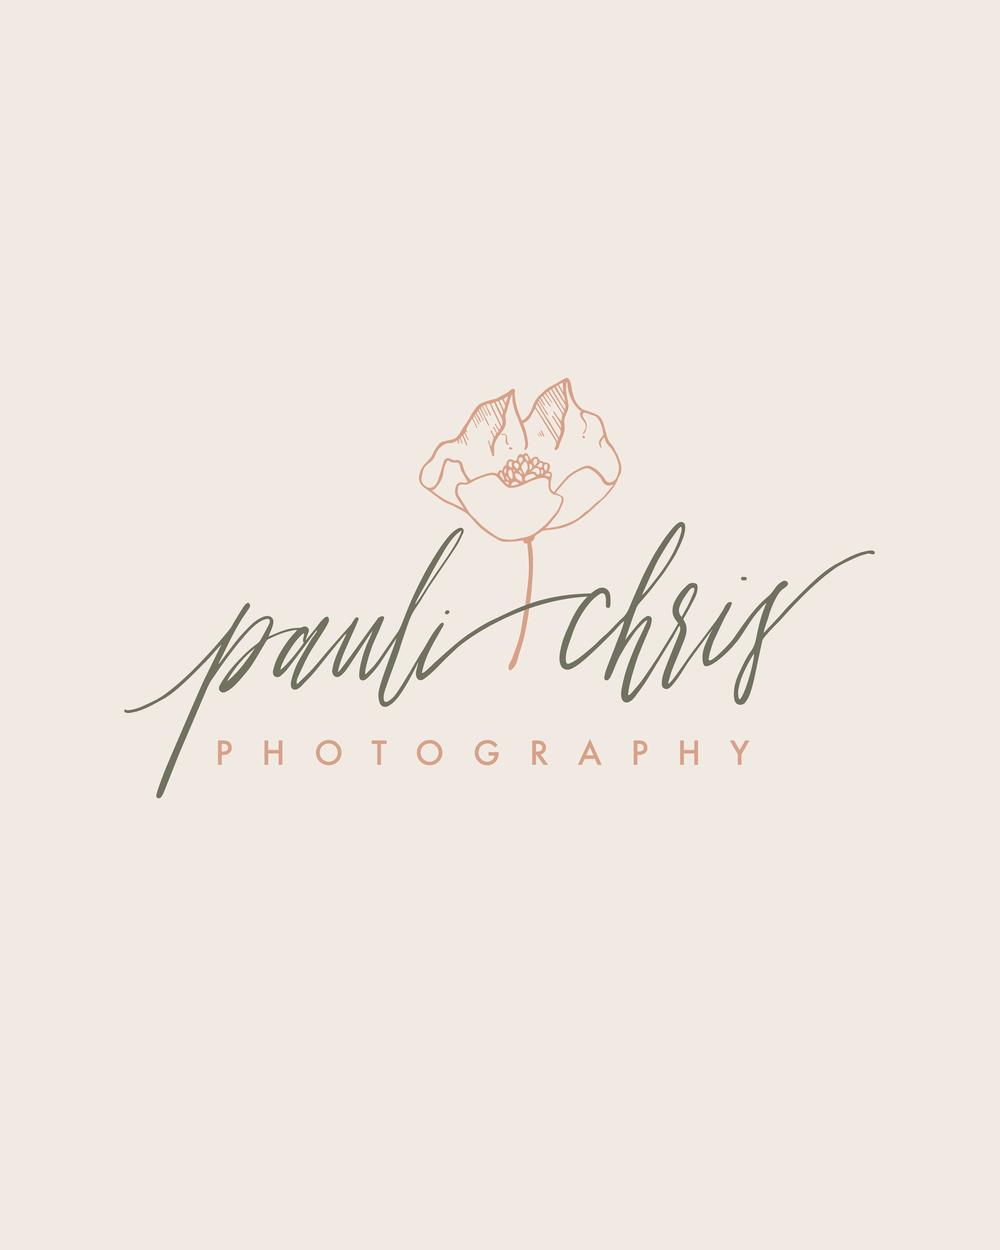 Outdoor Photography Duo Brand Design.png